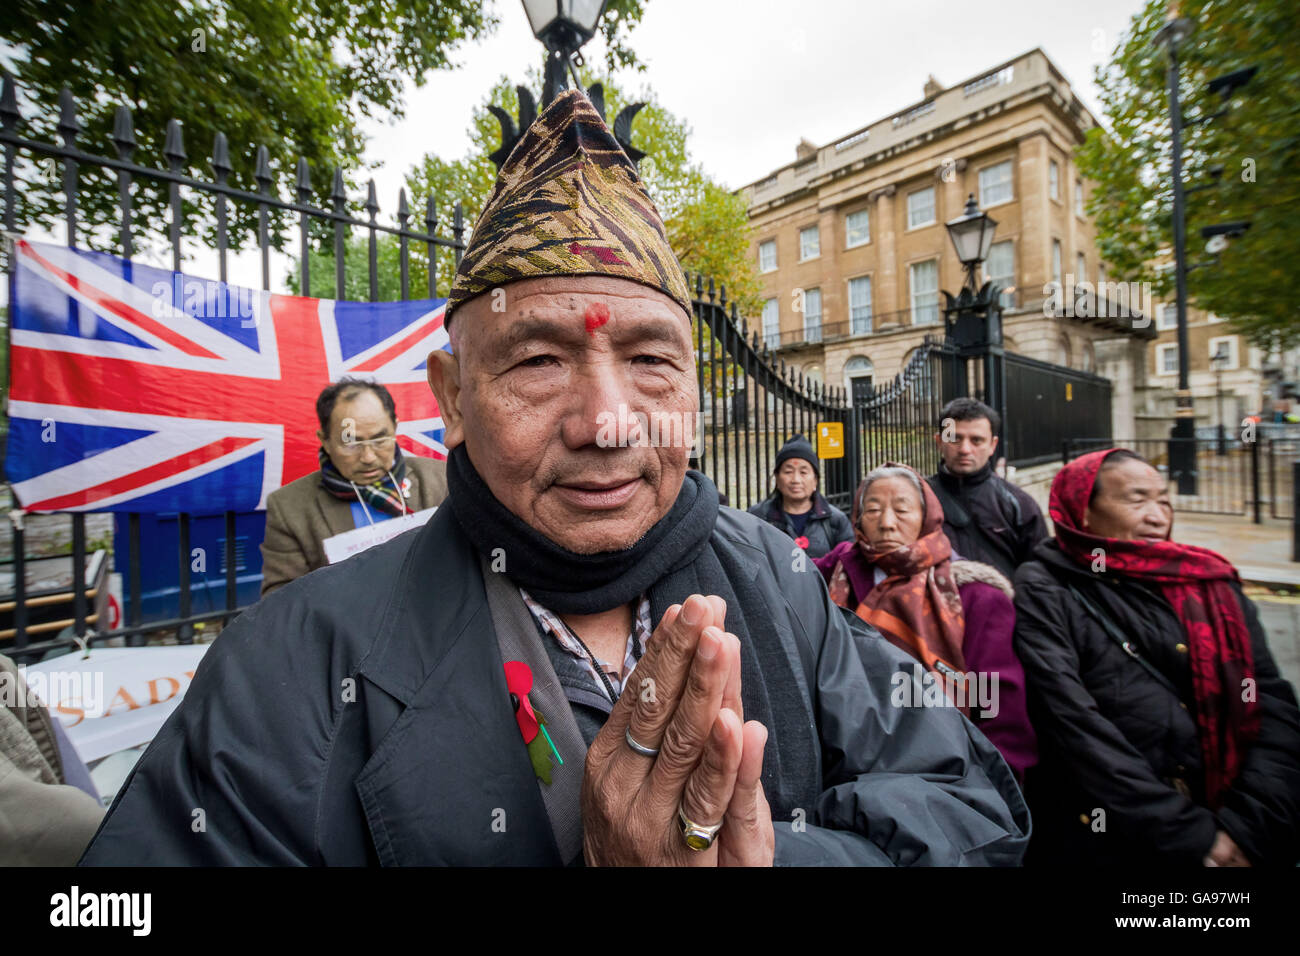 British Gurkhas Stock Photos Images Alamy Winter Hat Wh 97 Afternoon Prayers On Seventh Day Of A Hunger Strike Opposite Downing Street In London By Veteran